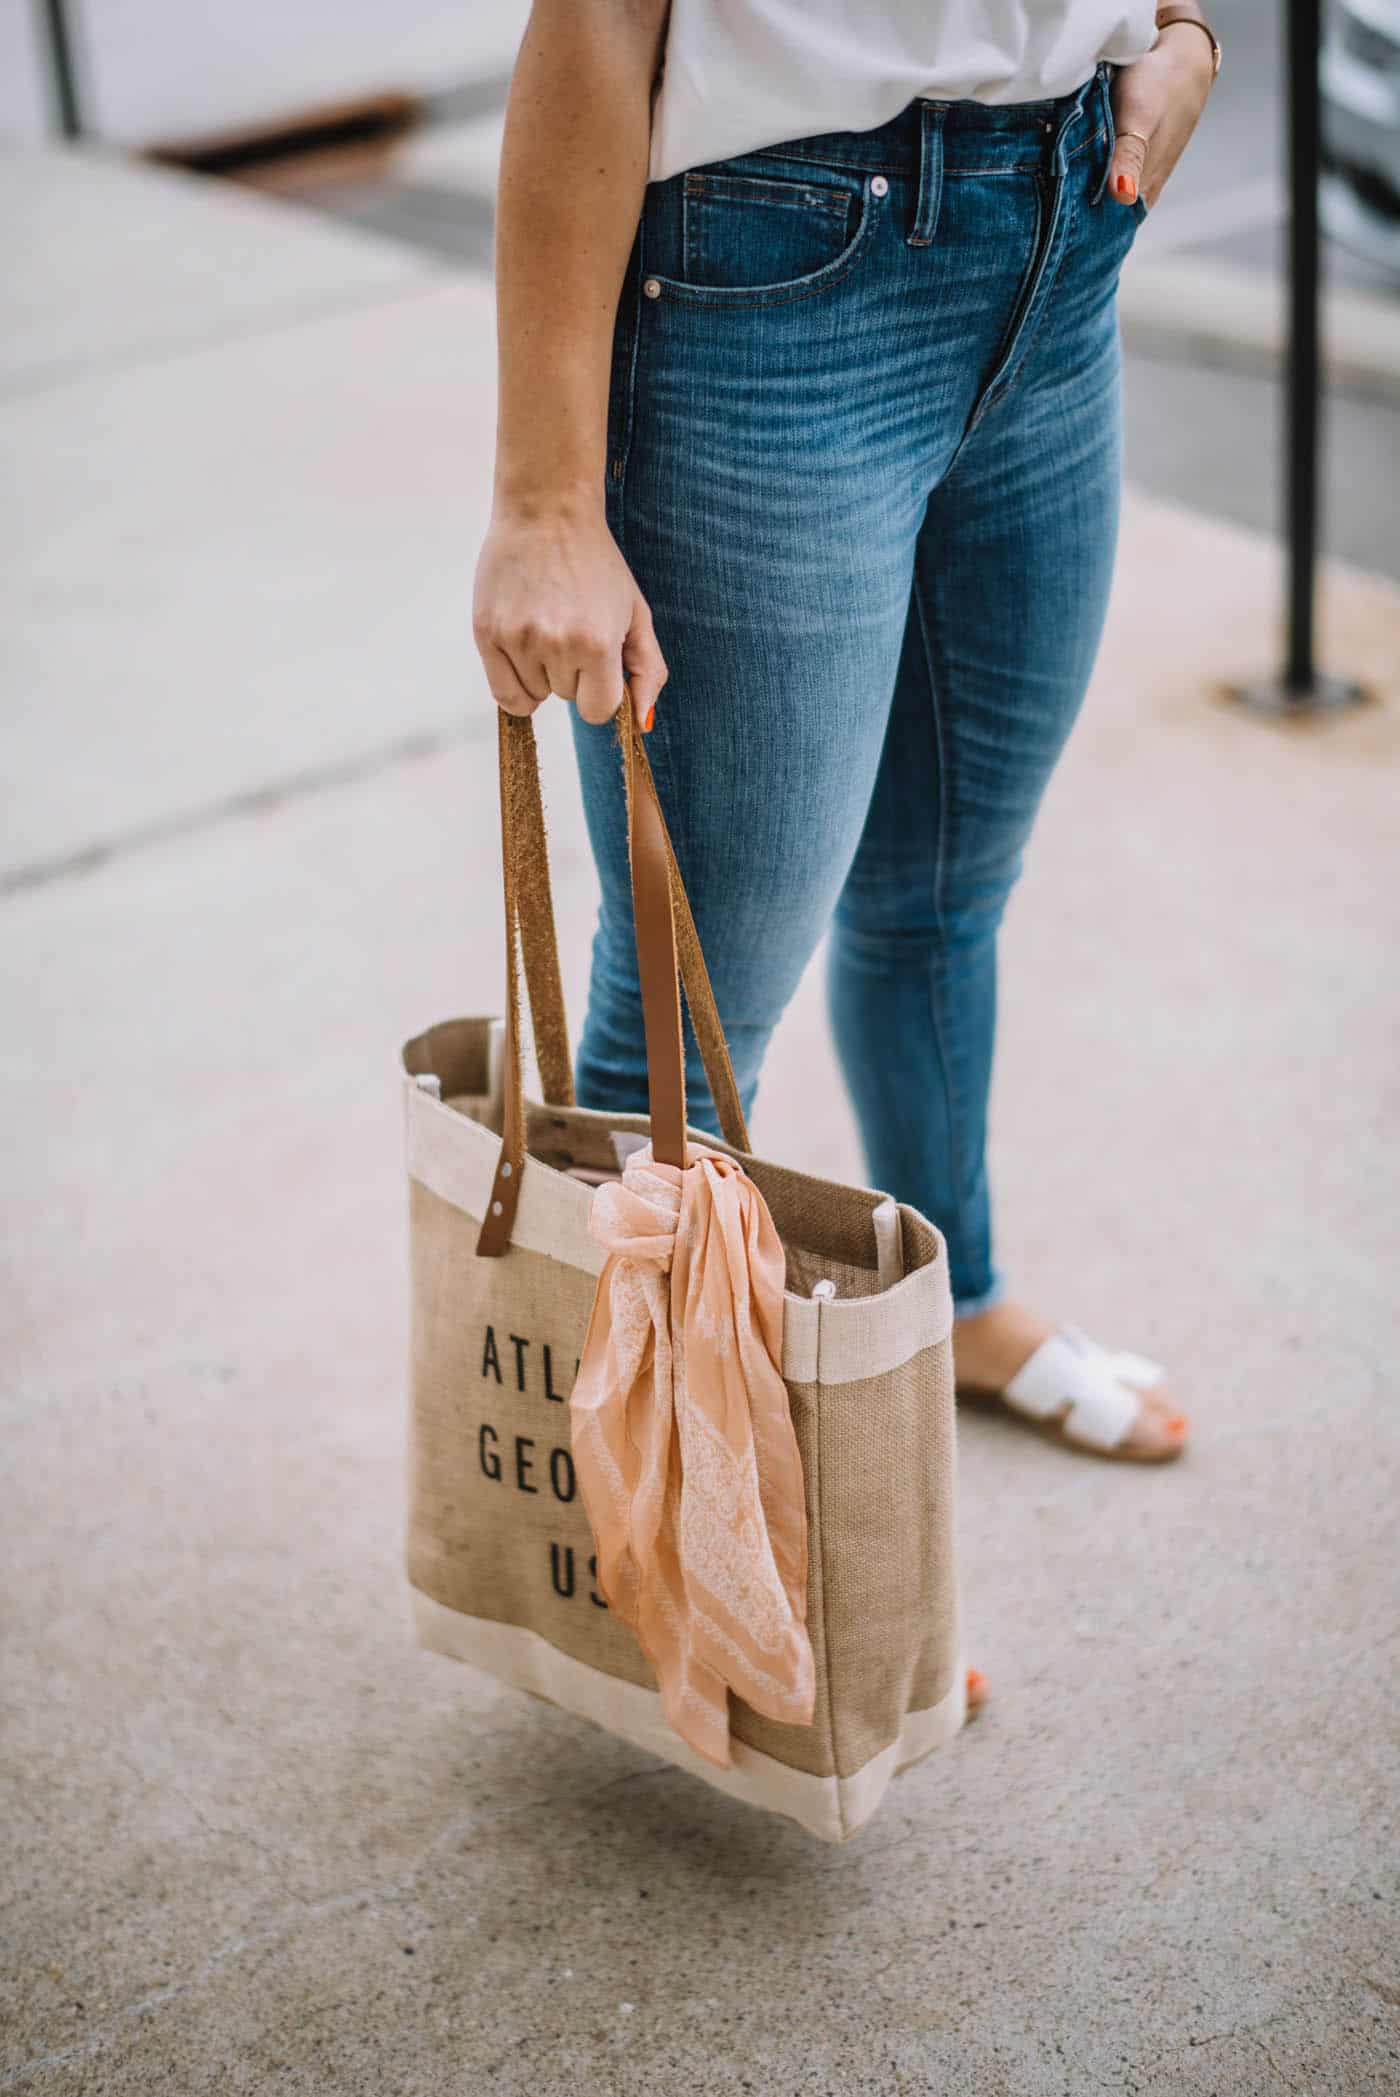 apolis market bag, casual white tee and jeans outfit - My Style Vita